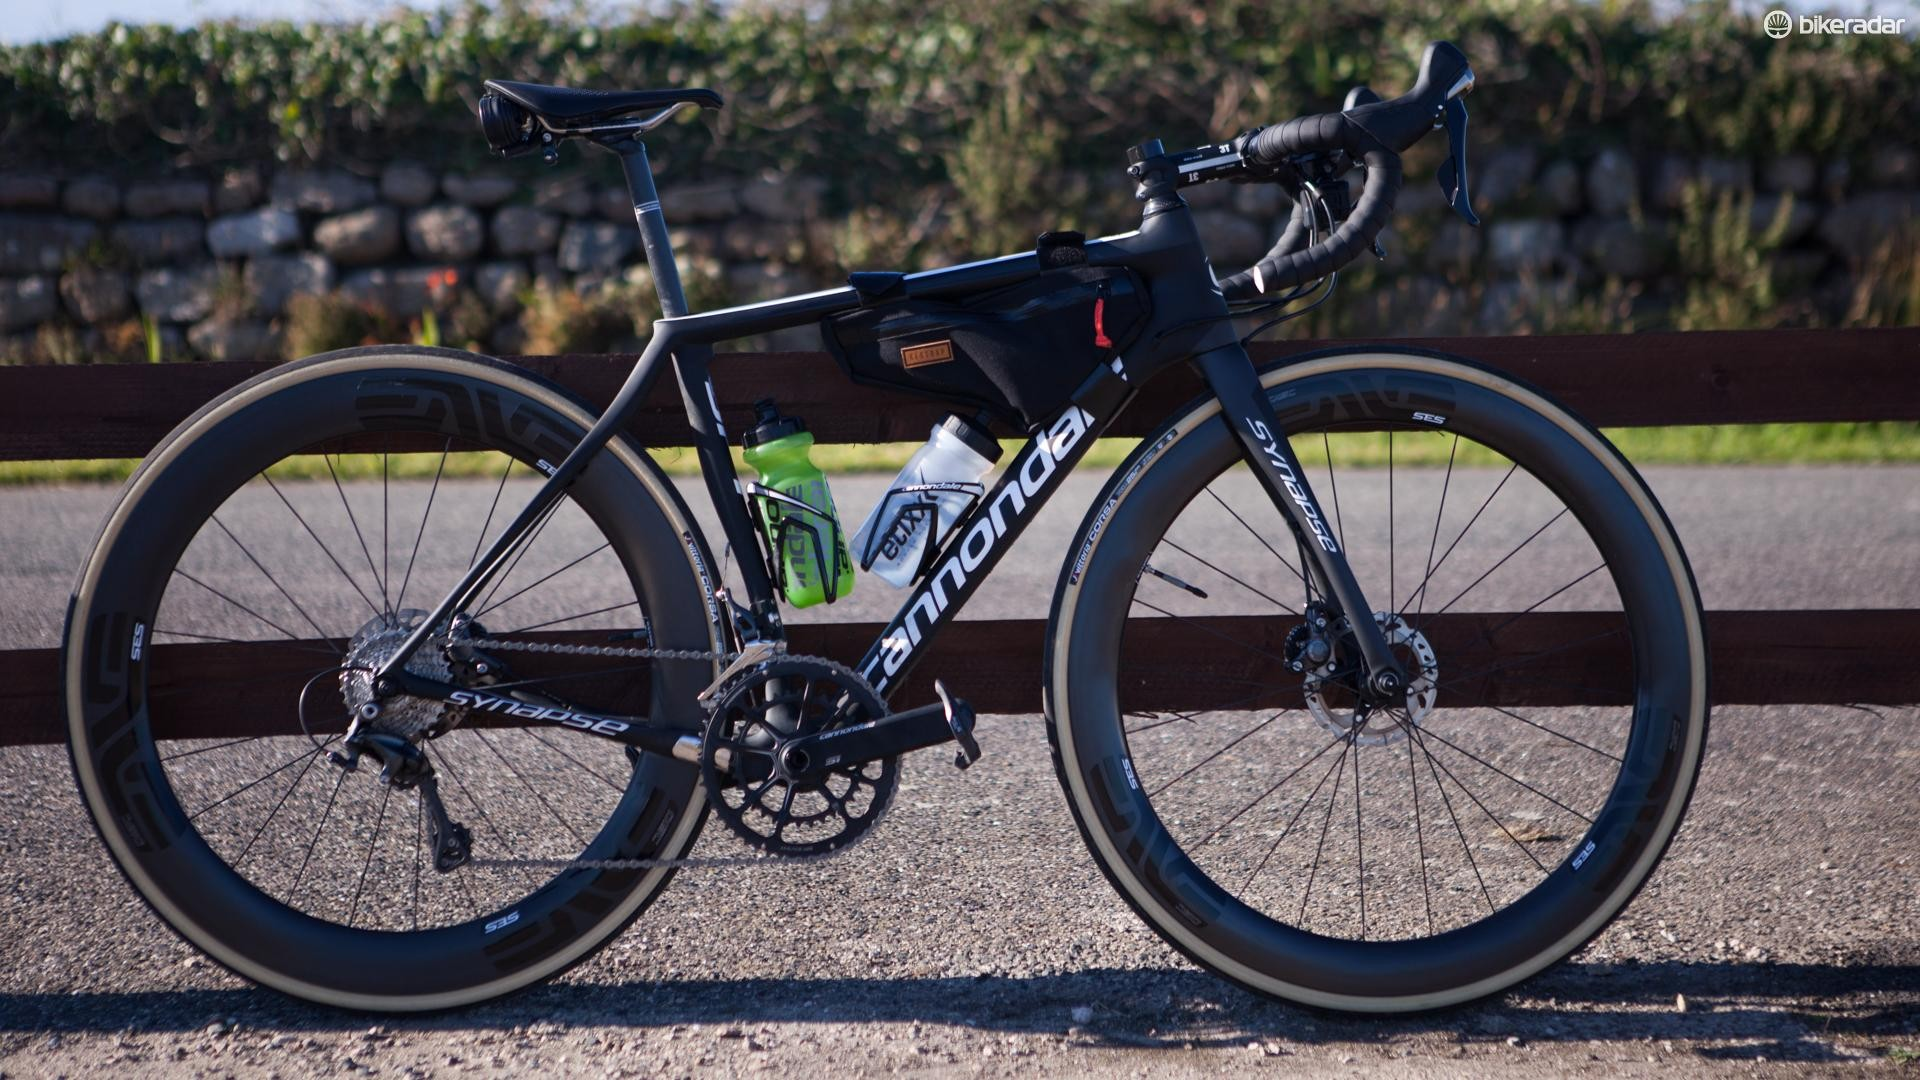 Cannondale's Synapse Carbon Ultegra was the ride of choice for the 1,000 mile north-bound journey